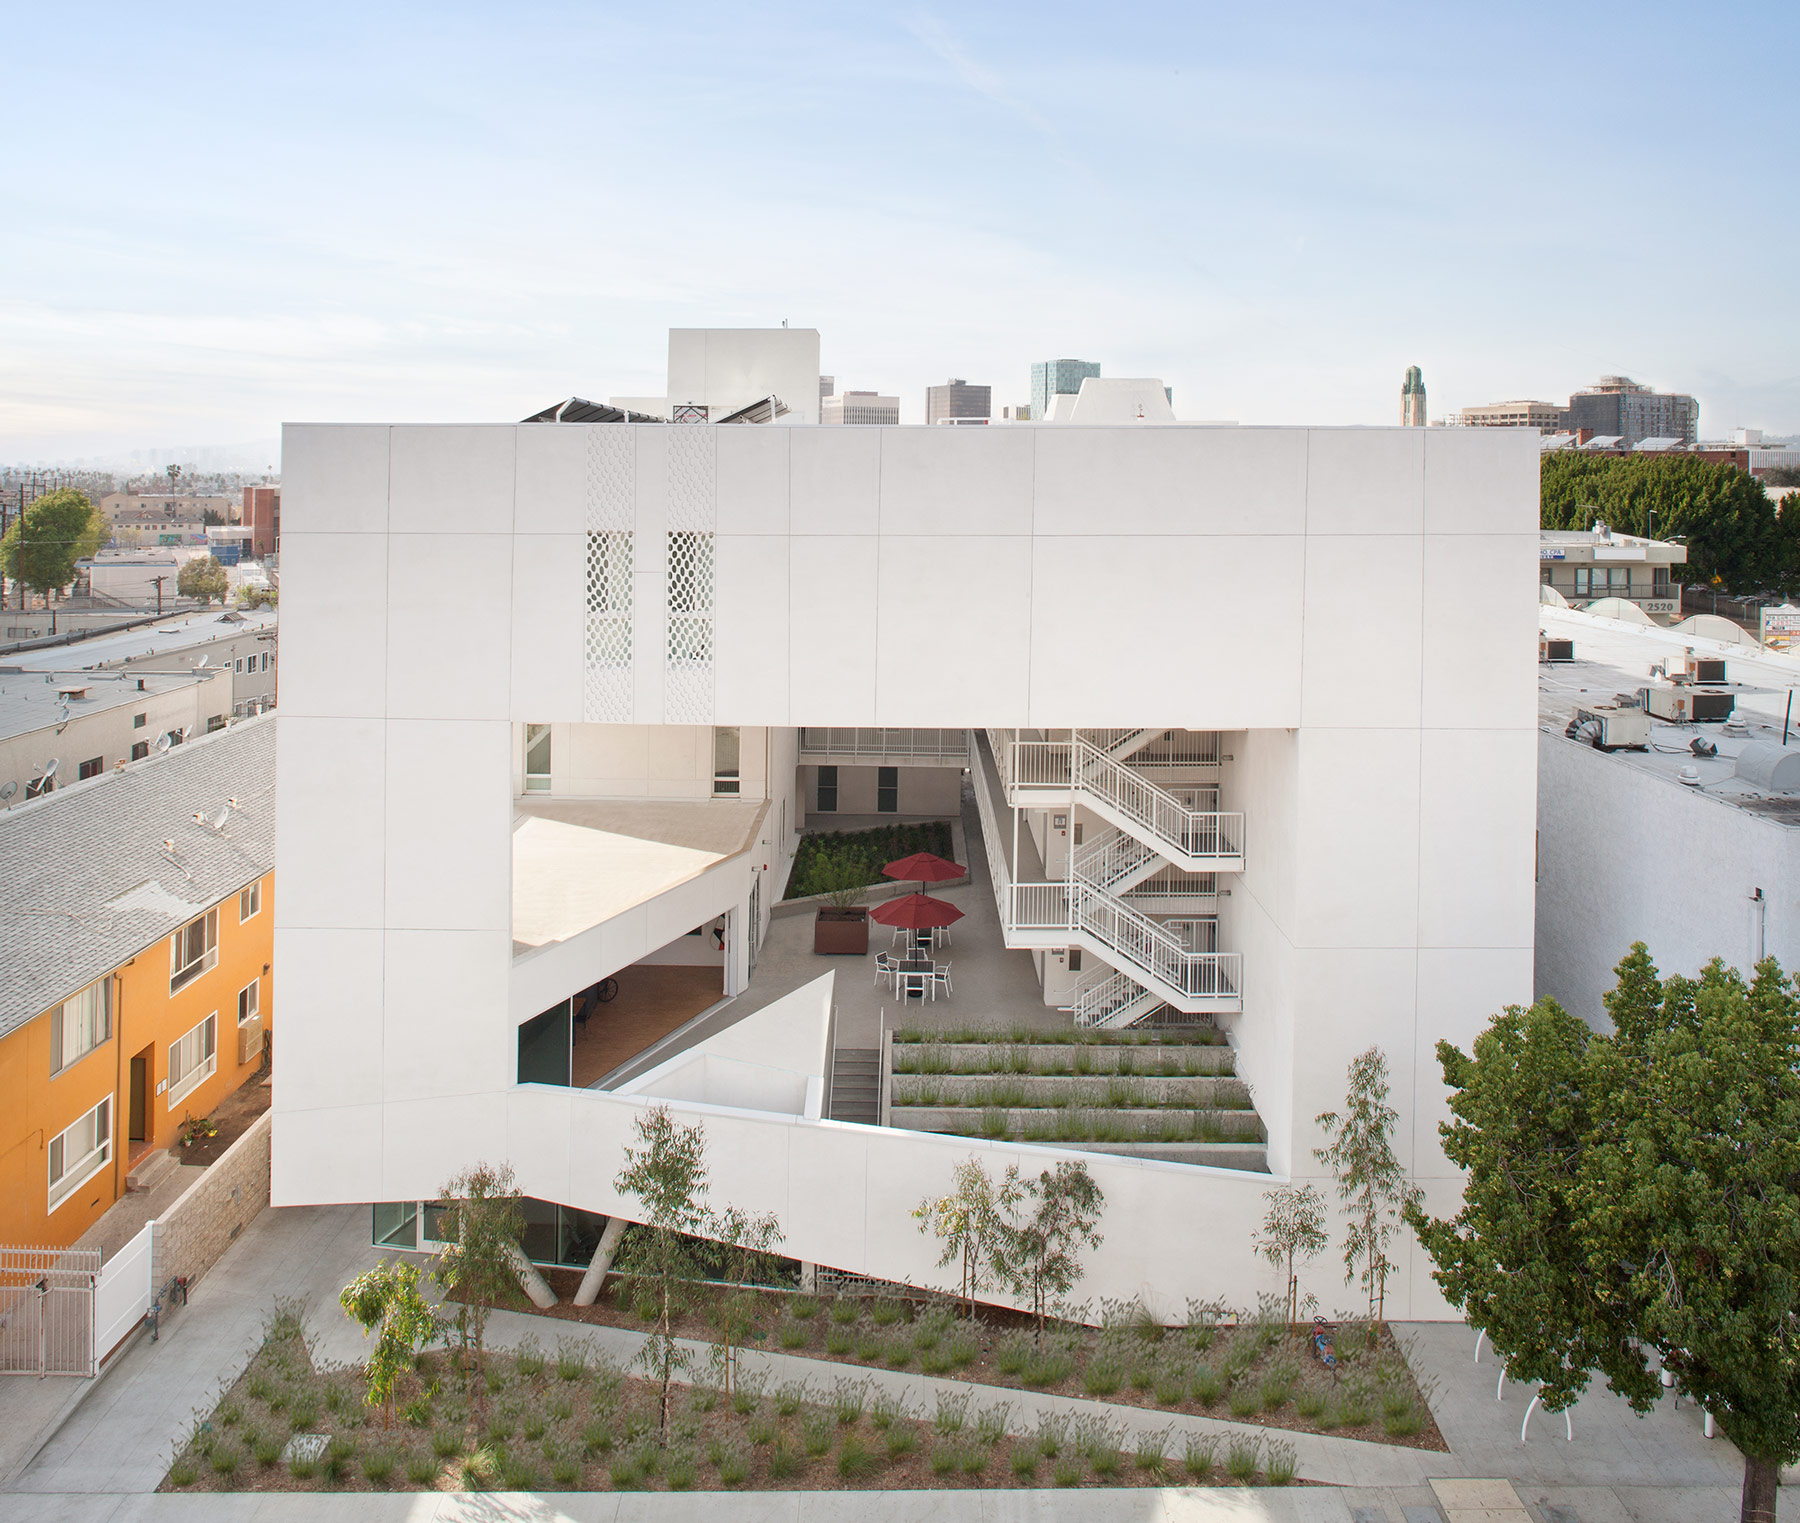 Bold Form Mixes Layers Of Public And Private In Brooks